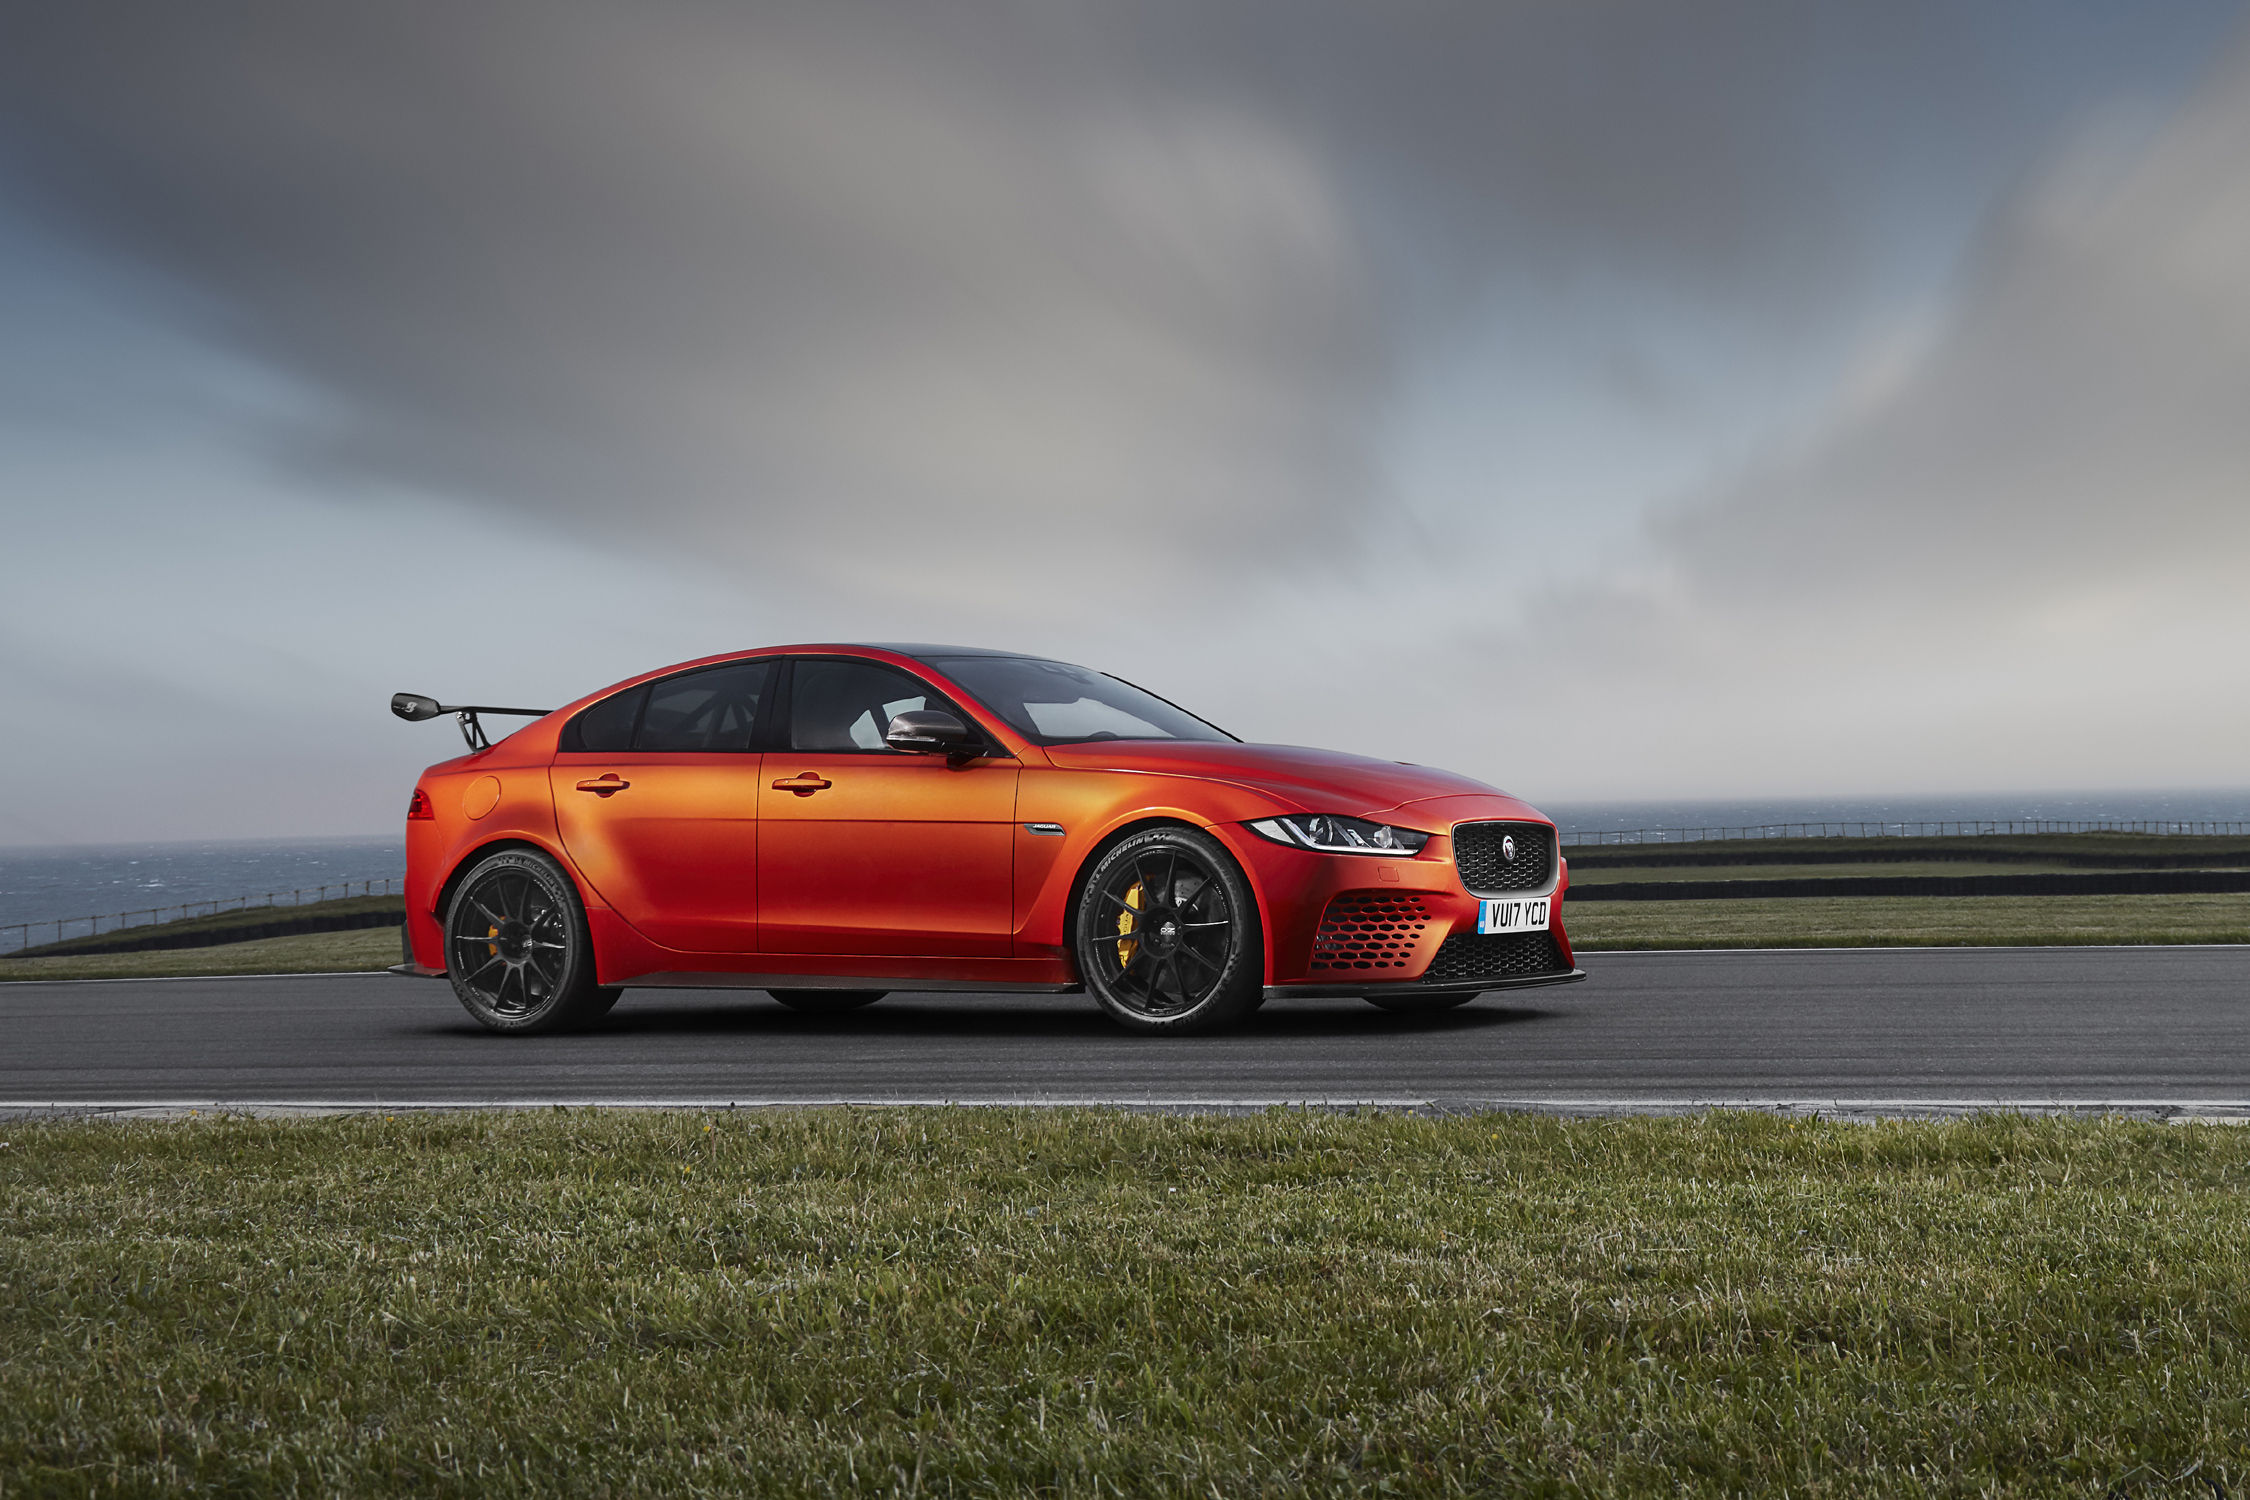 nouvelle jaguar xe sv project 8 extr me actualit automobile motorlegend. Black Bedroom Furniture Sets. Home Design Ideas